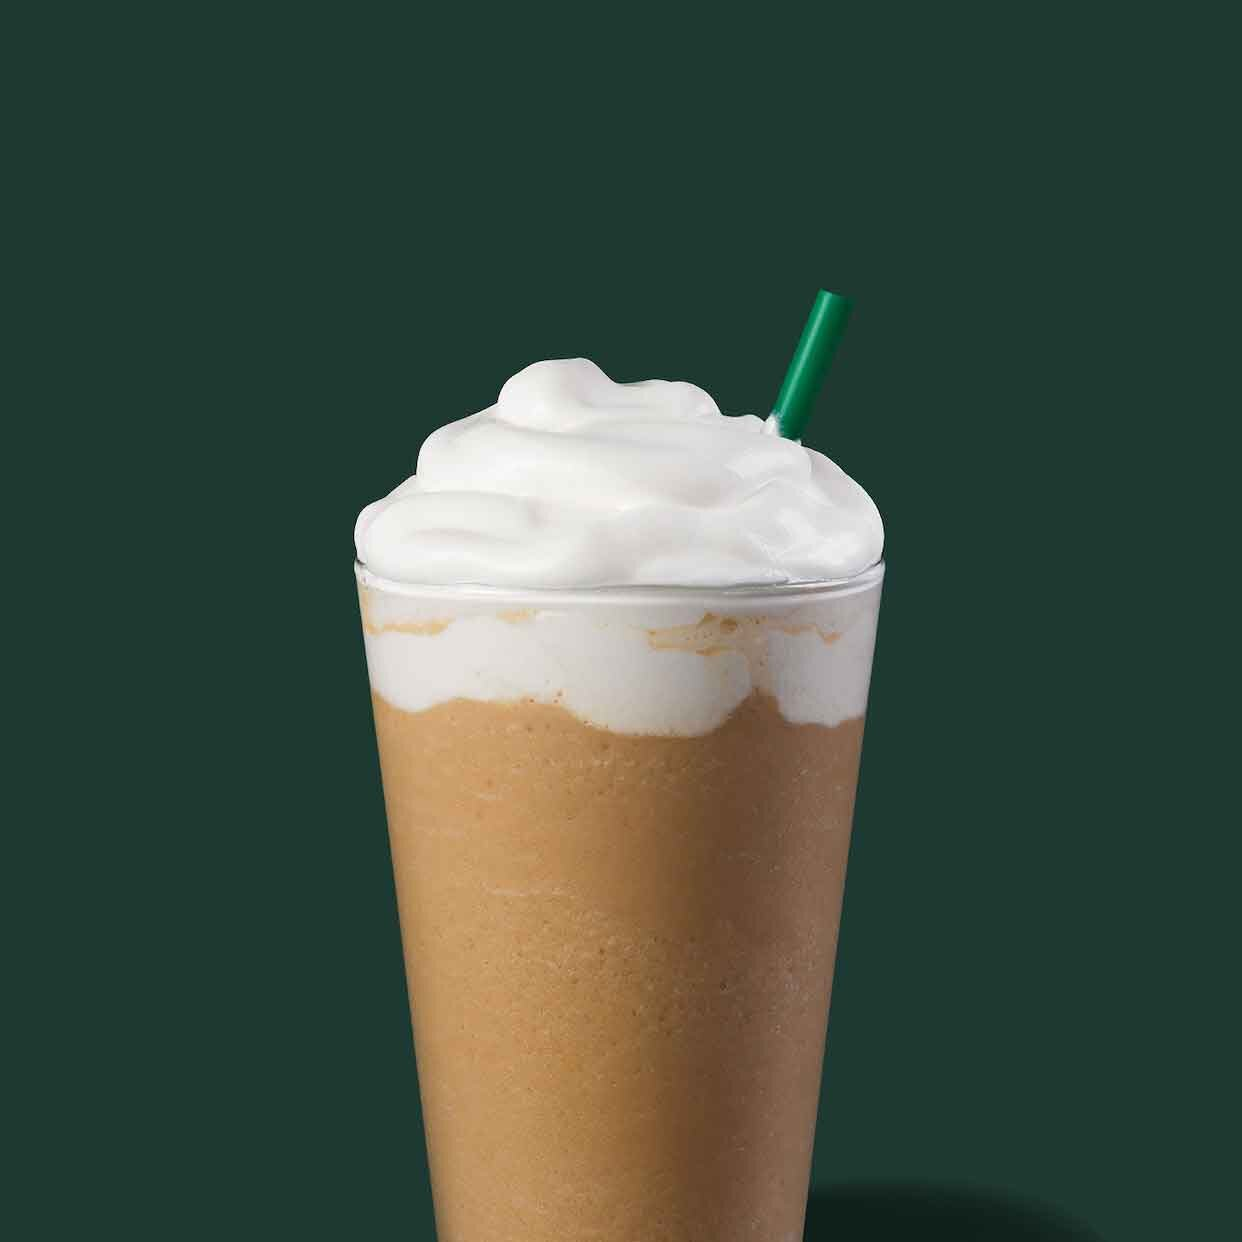 Starbucks white chocolate mocha frappuccino blended coffee